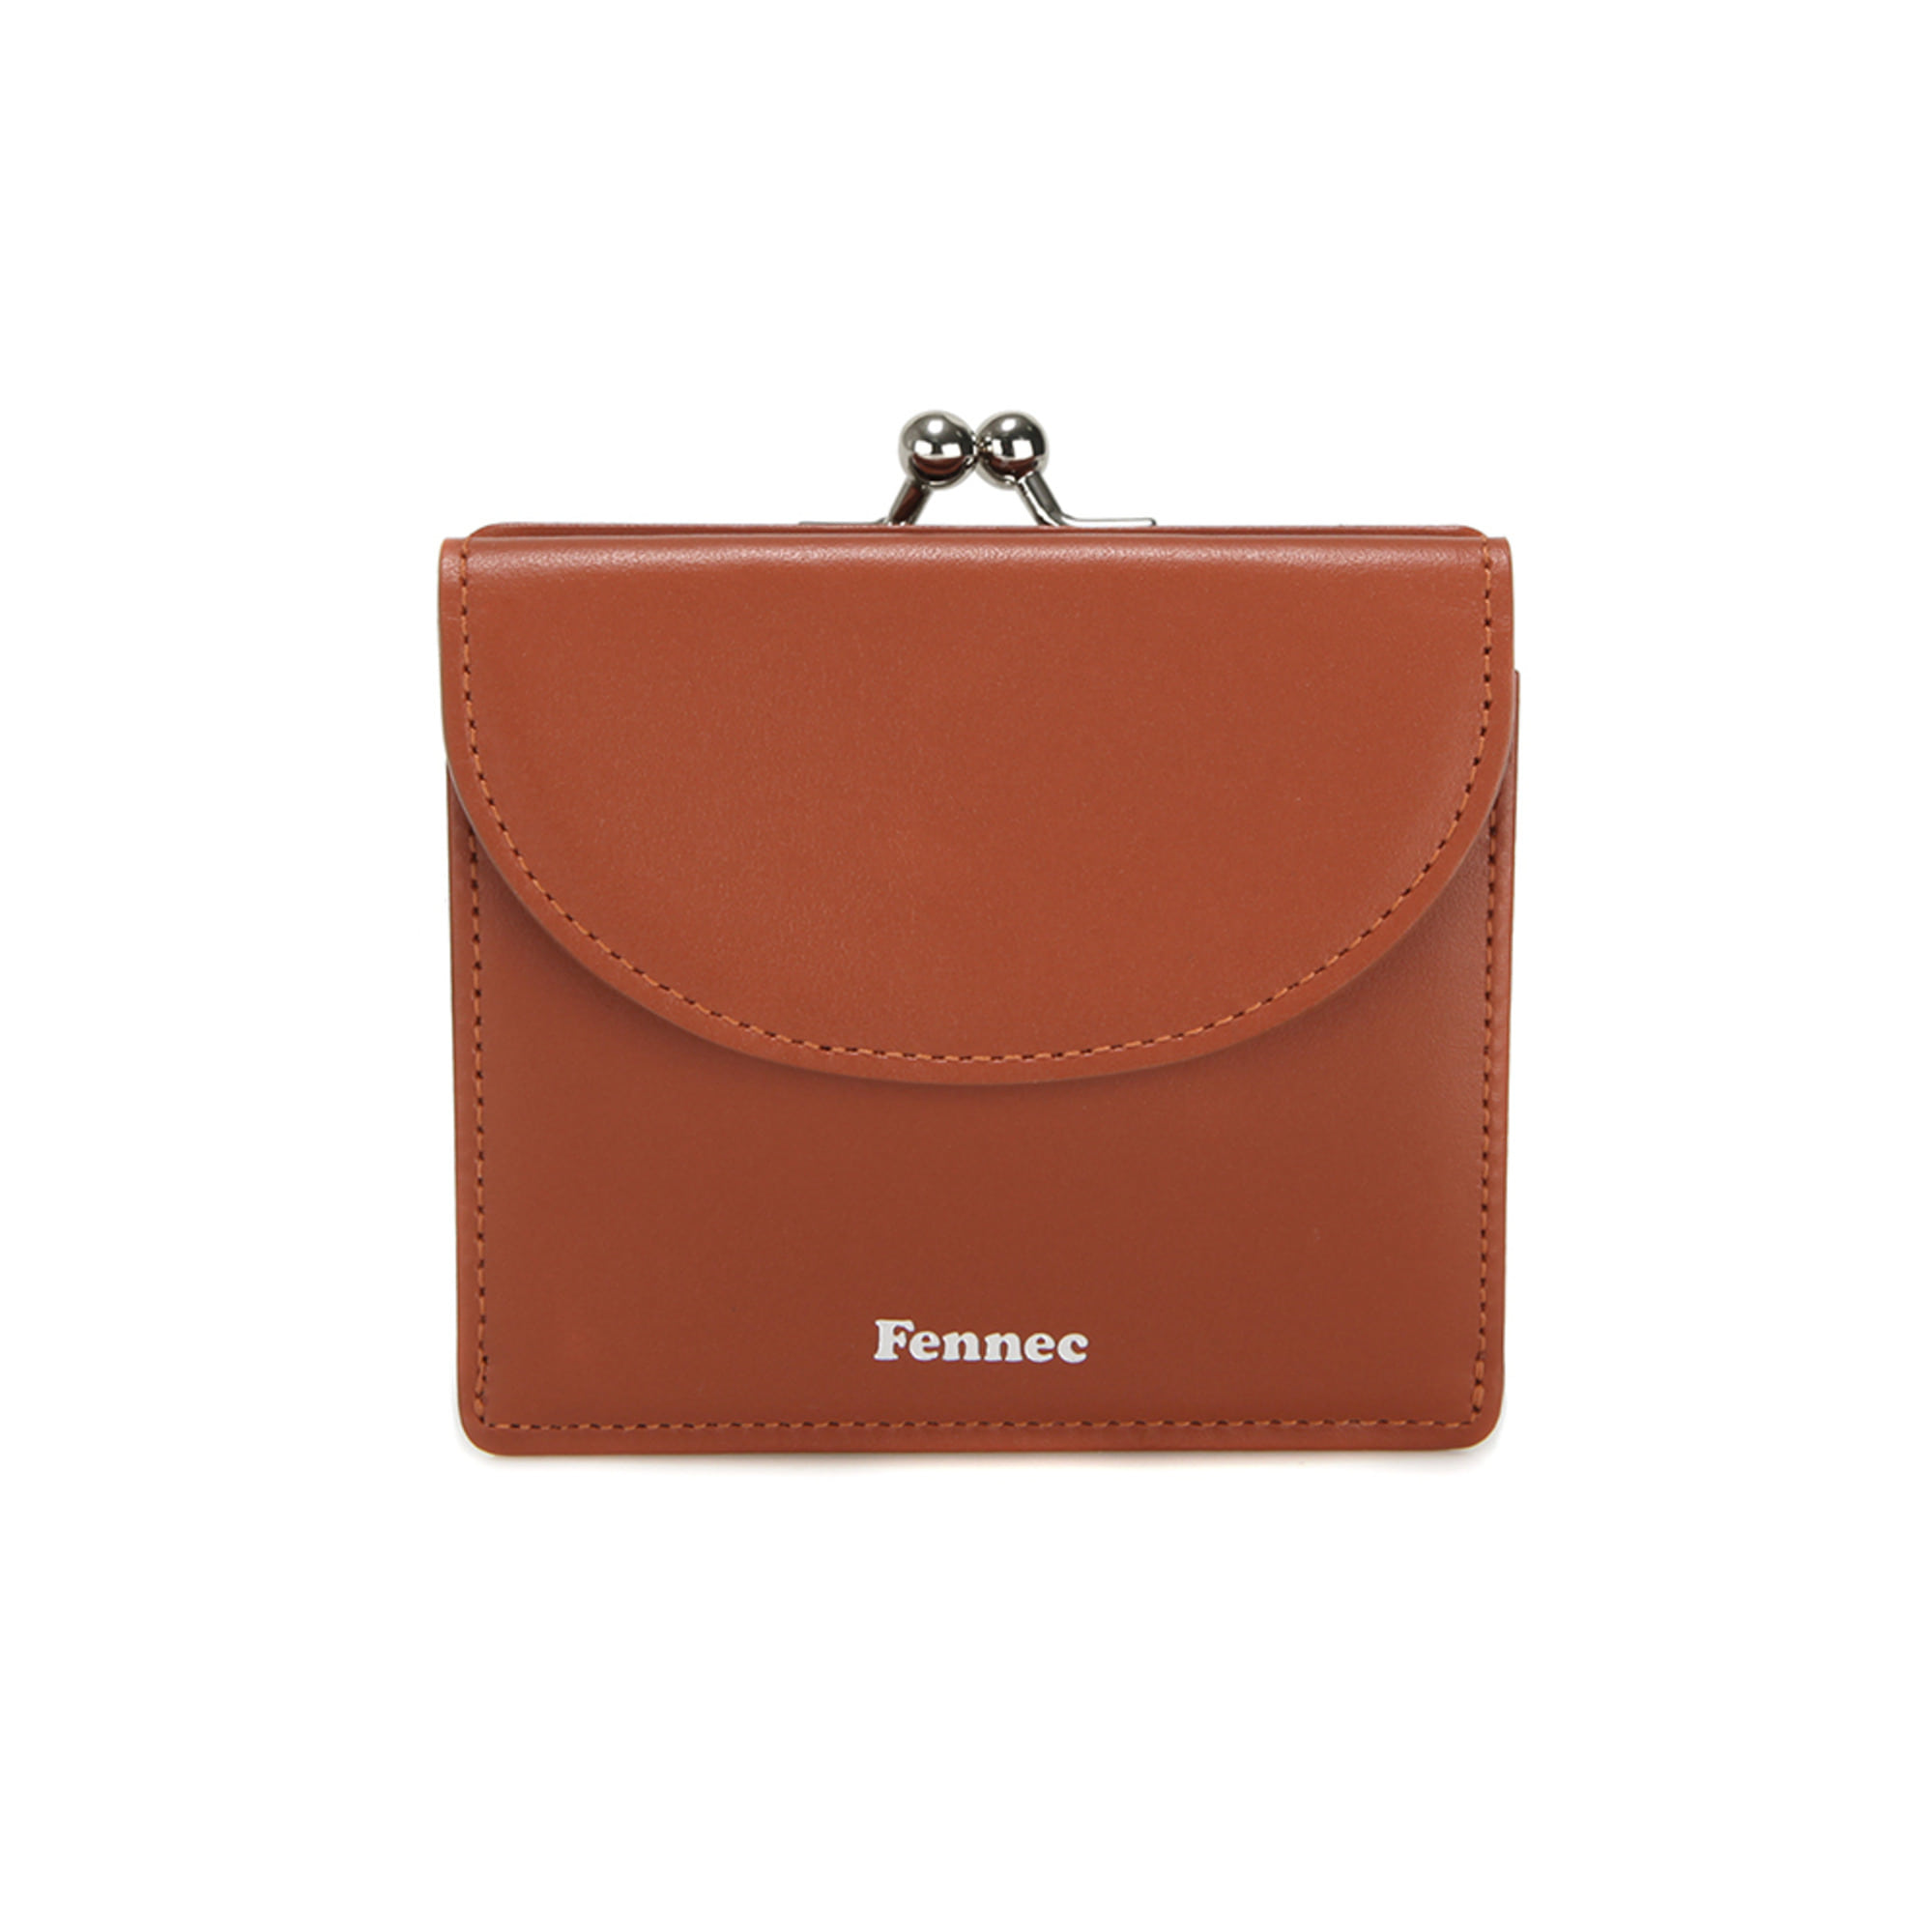 [DISCONTINUE] FRAME CARD POCKET - AMBER